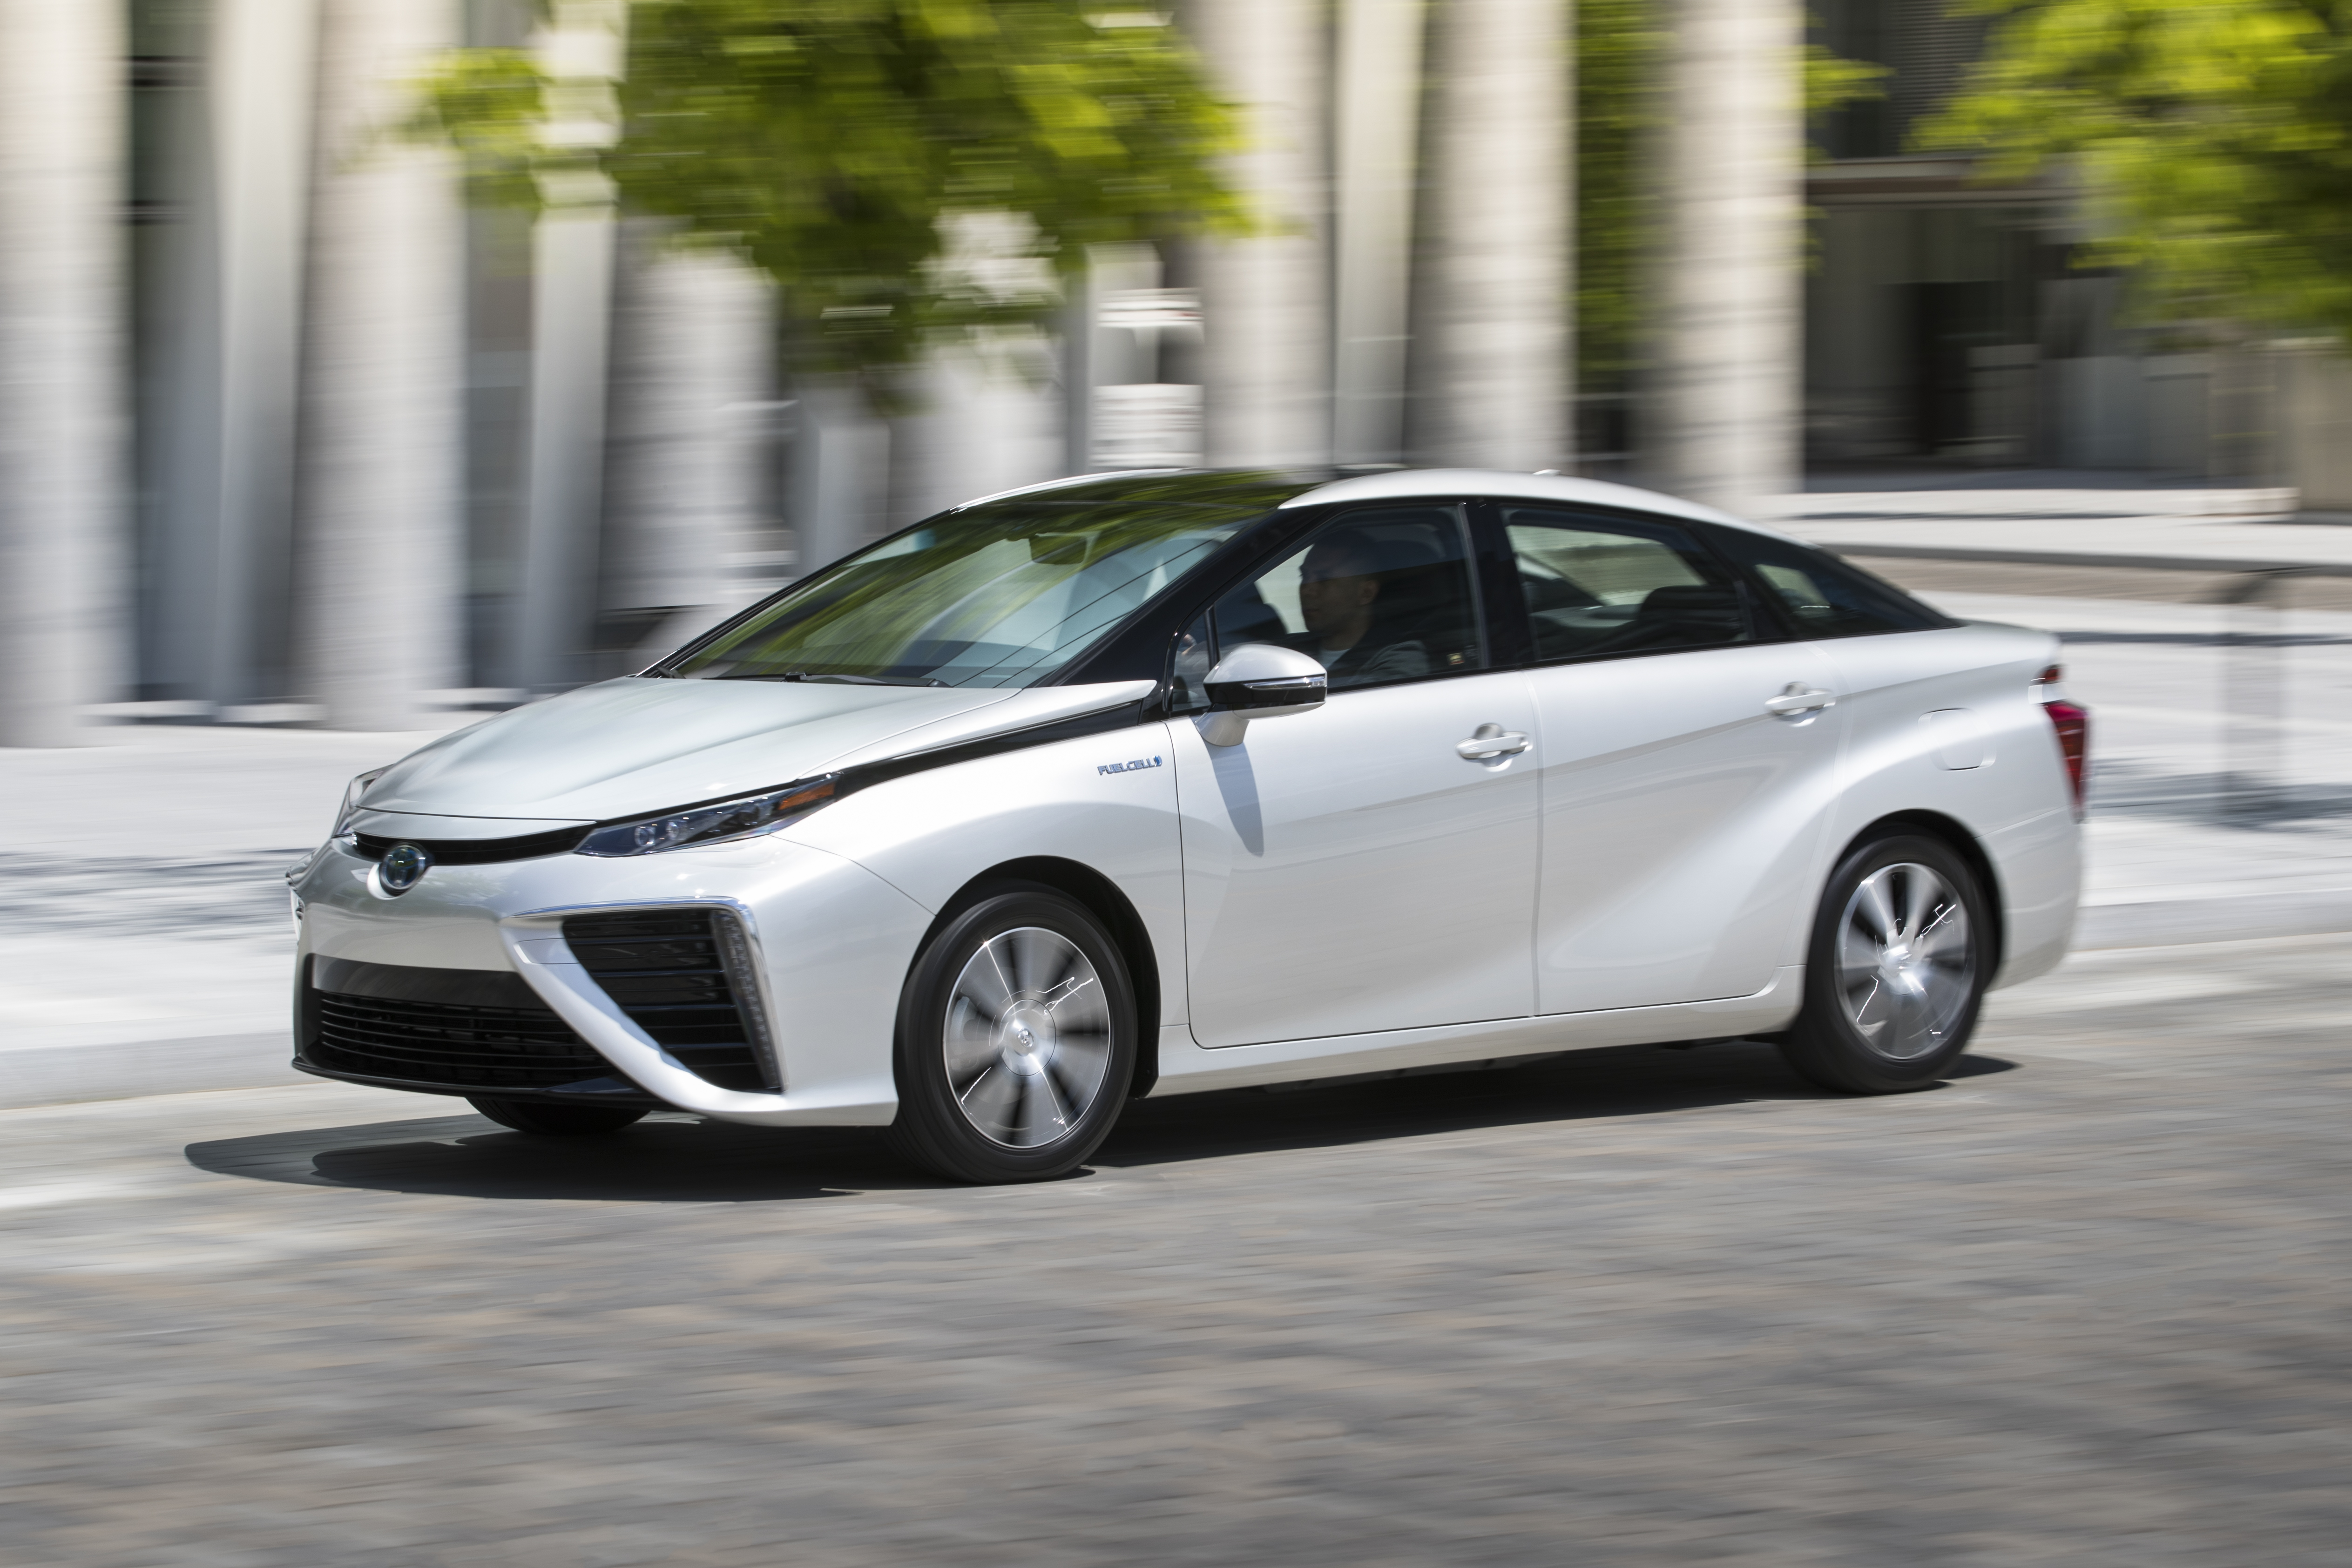 The Toyota Mirai Fuel Cell Electric Vehicle To Go On Sale This Year In Canada Starting In Quebec Jan 18 2018